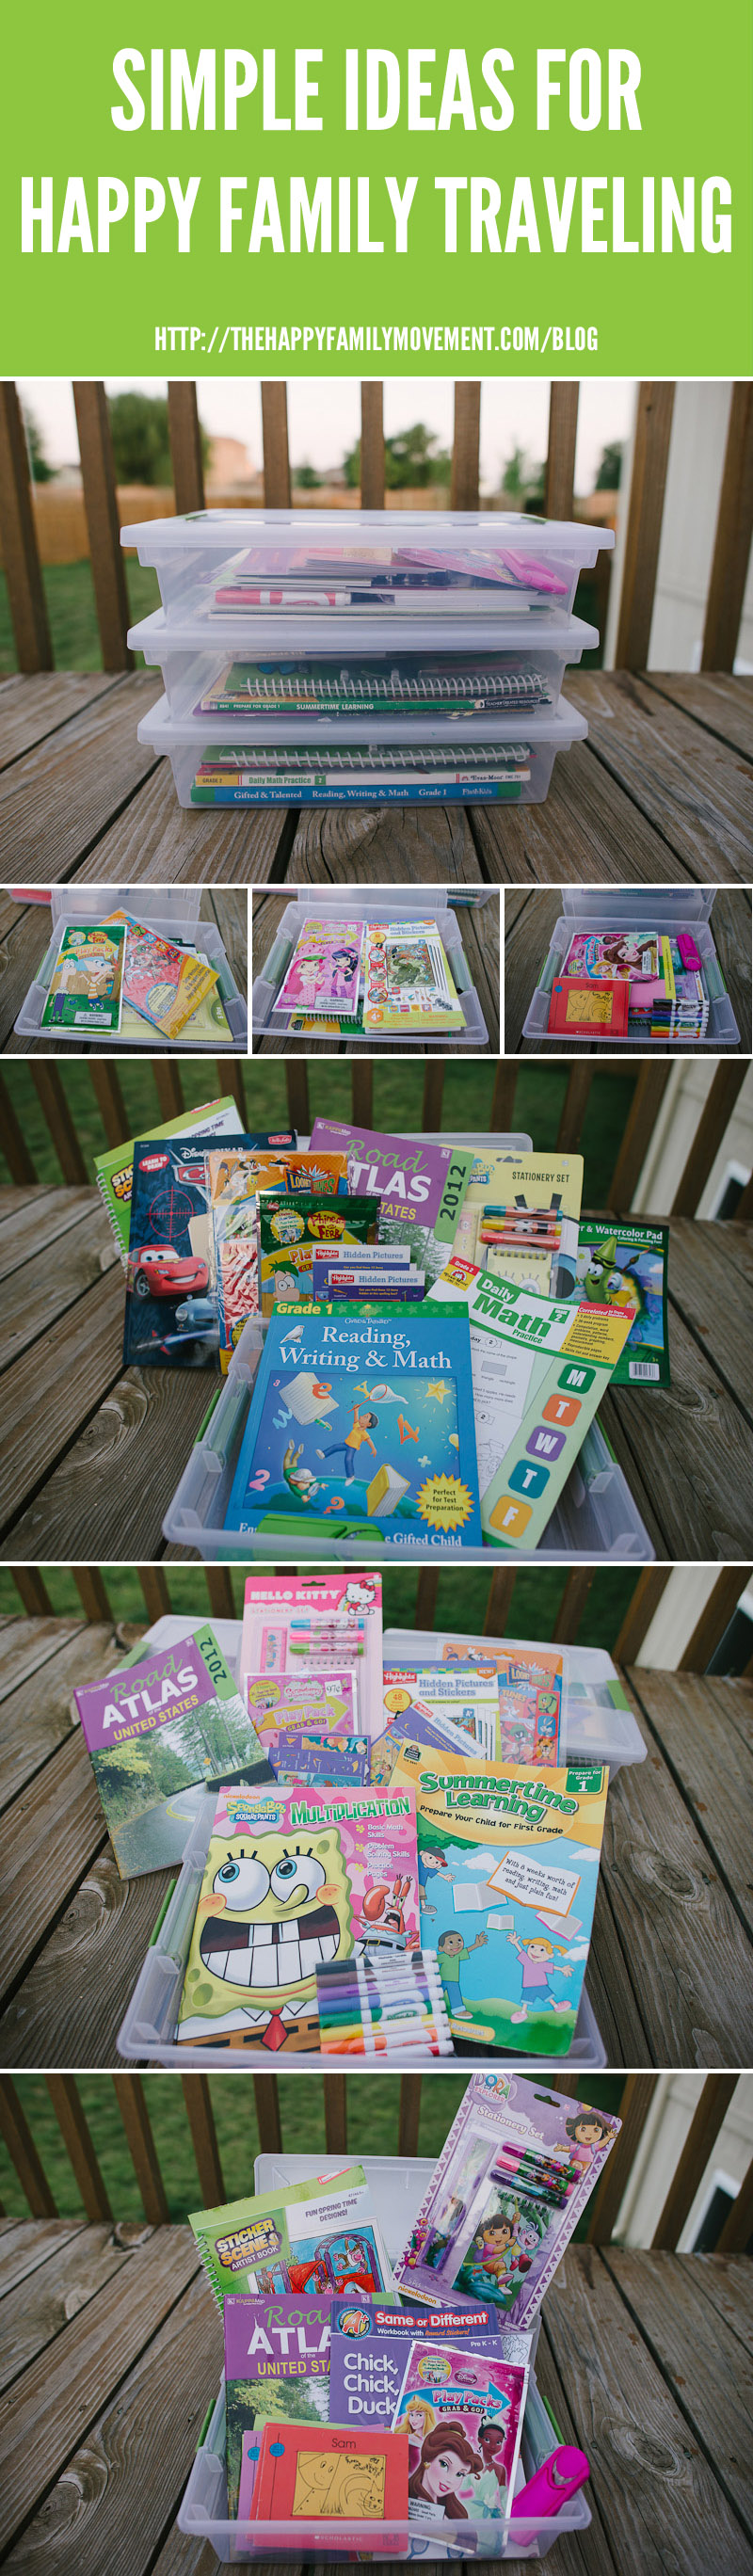 car packs for kids on road trips